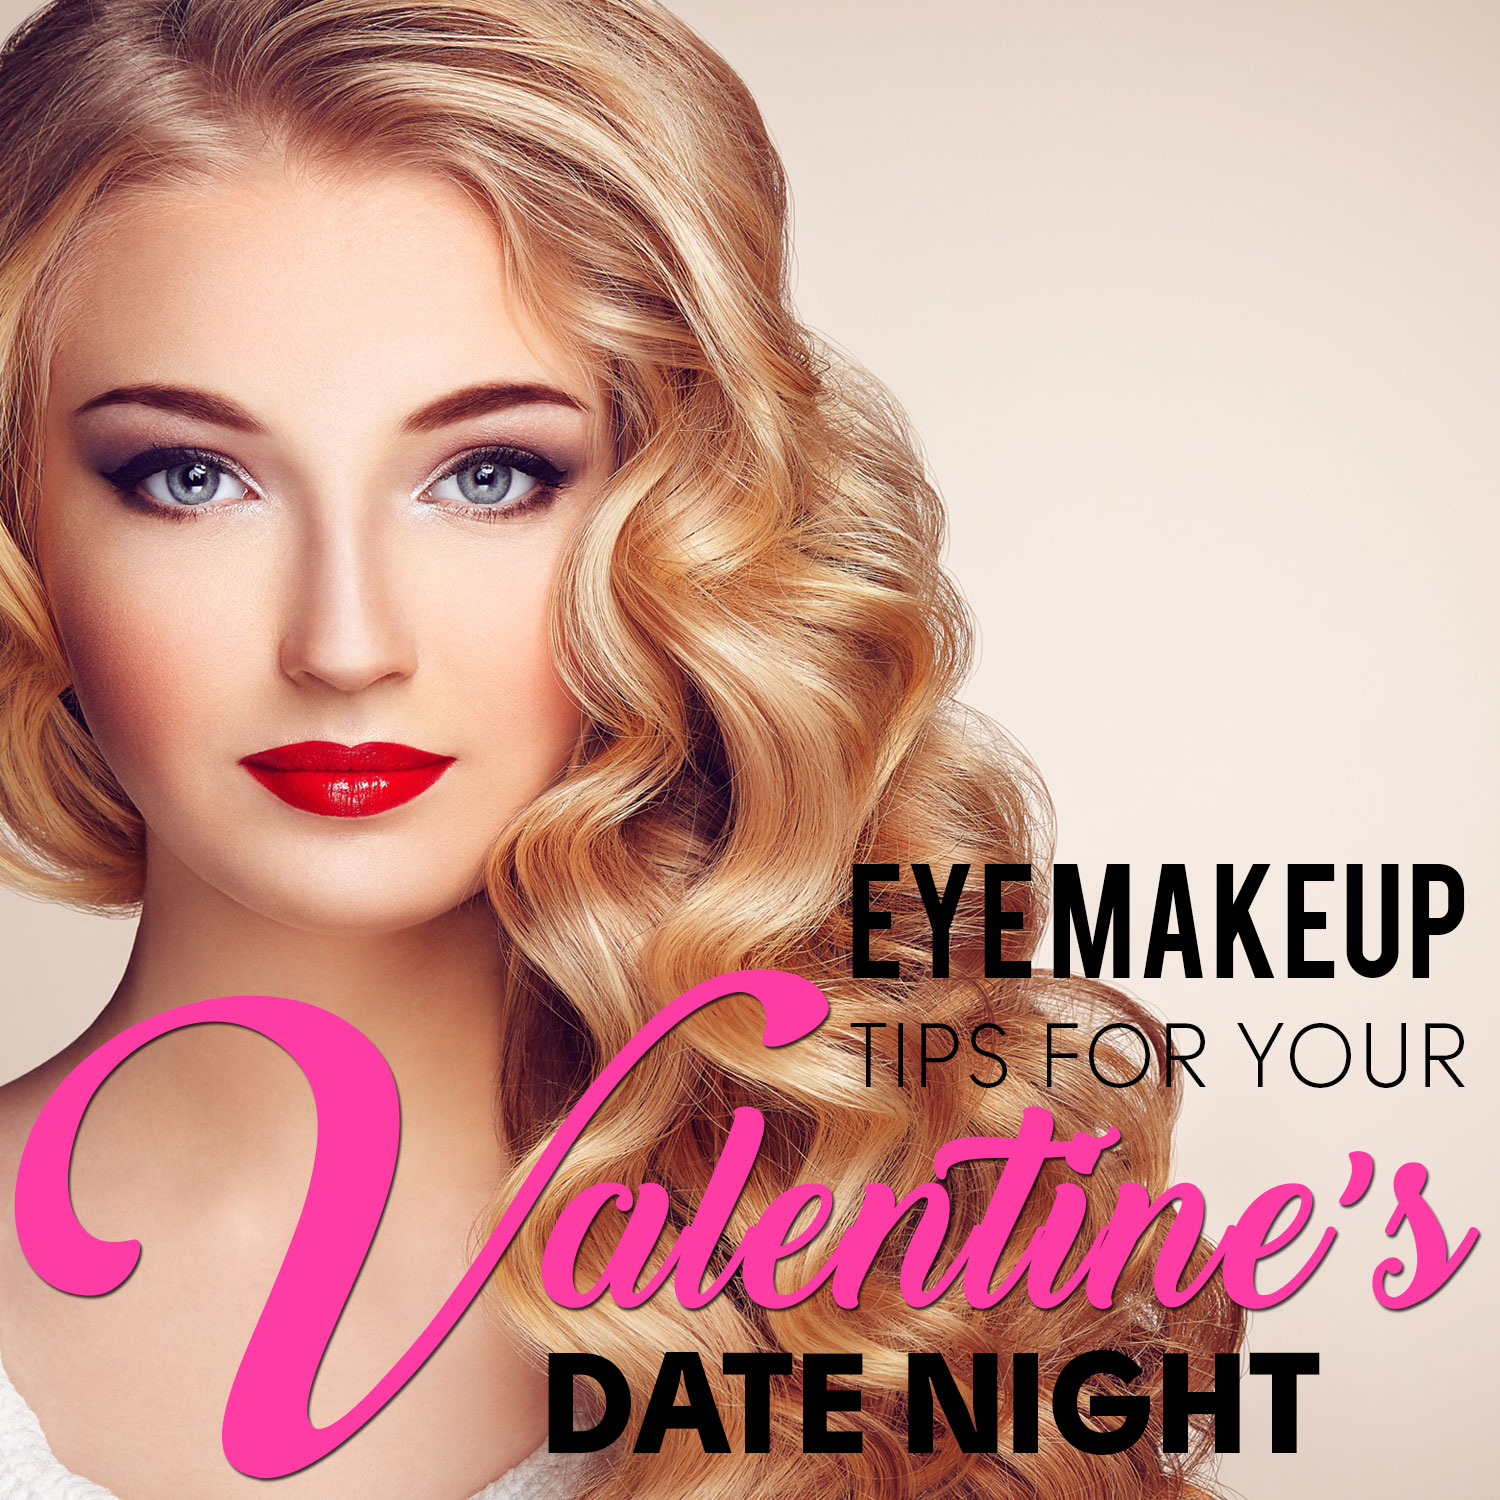 Eye Makeup Tips for Your Valentine's Date Night